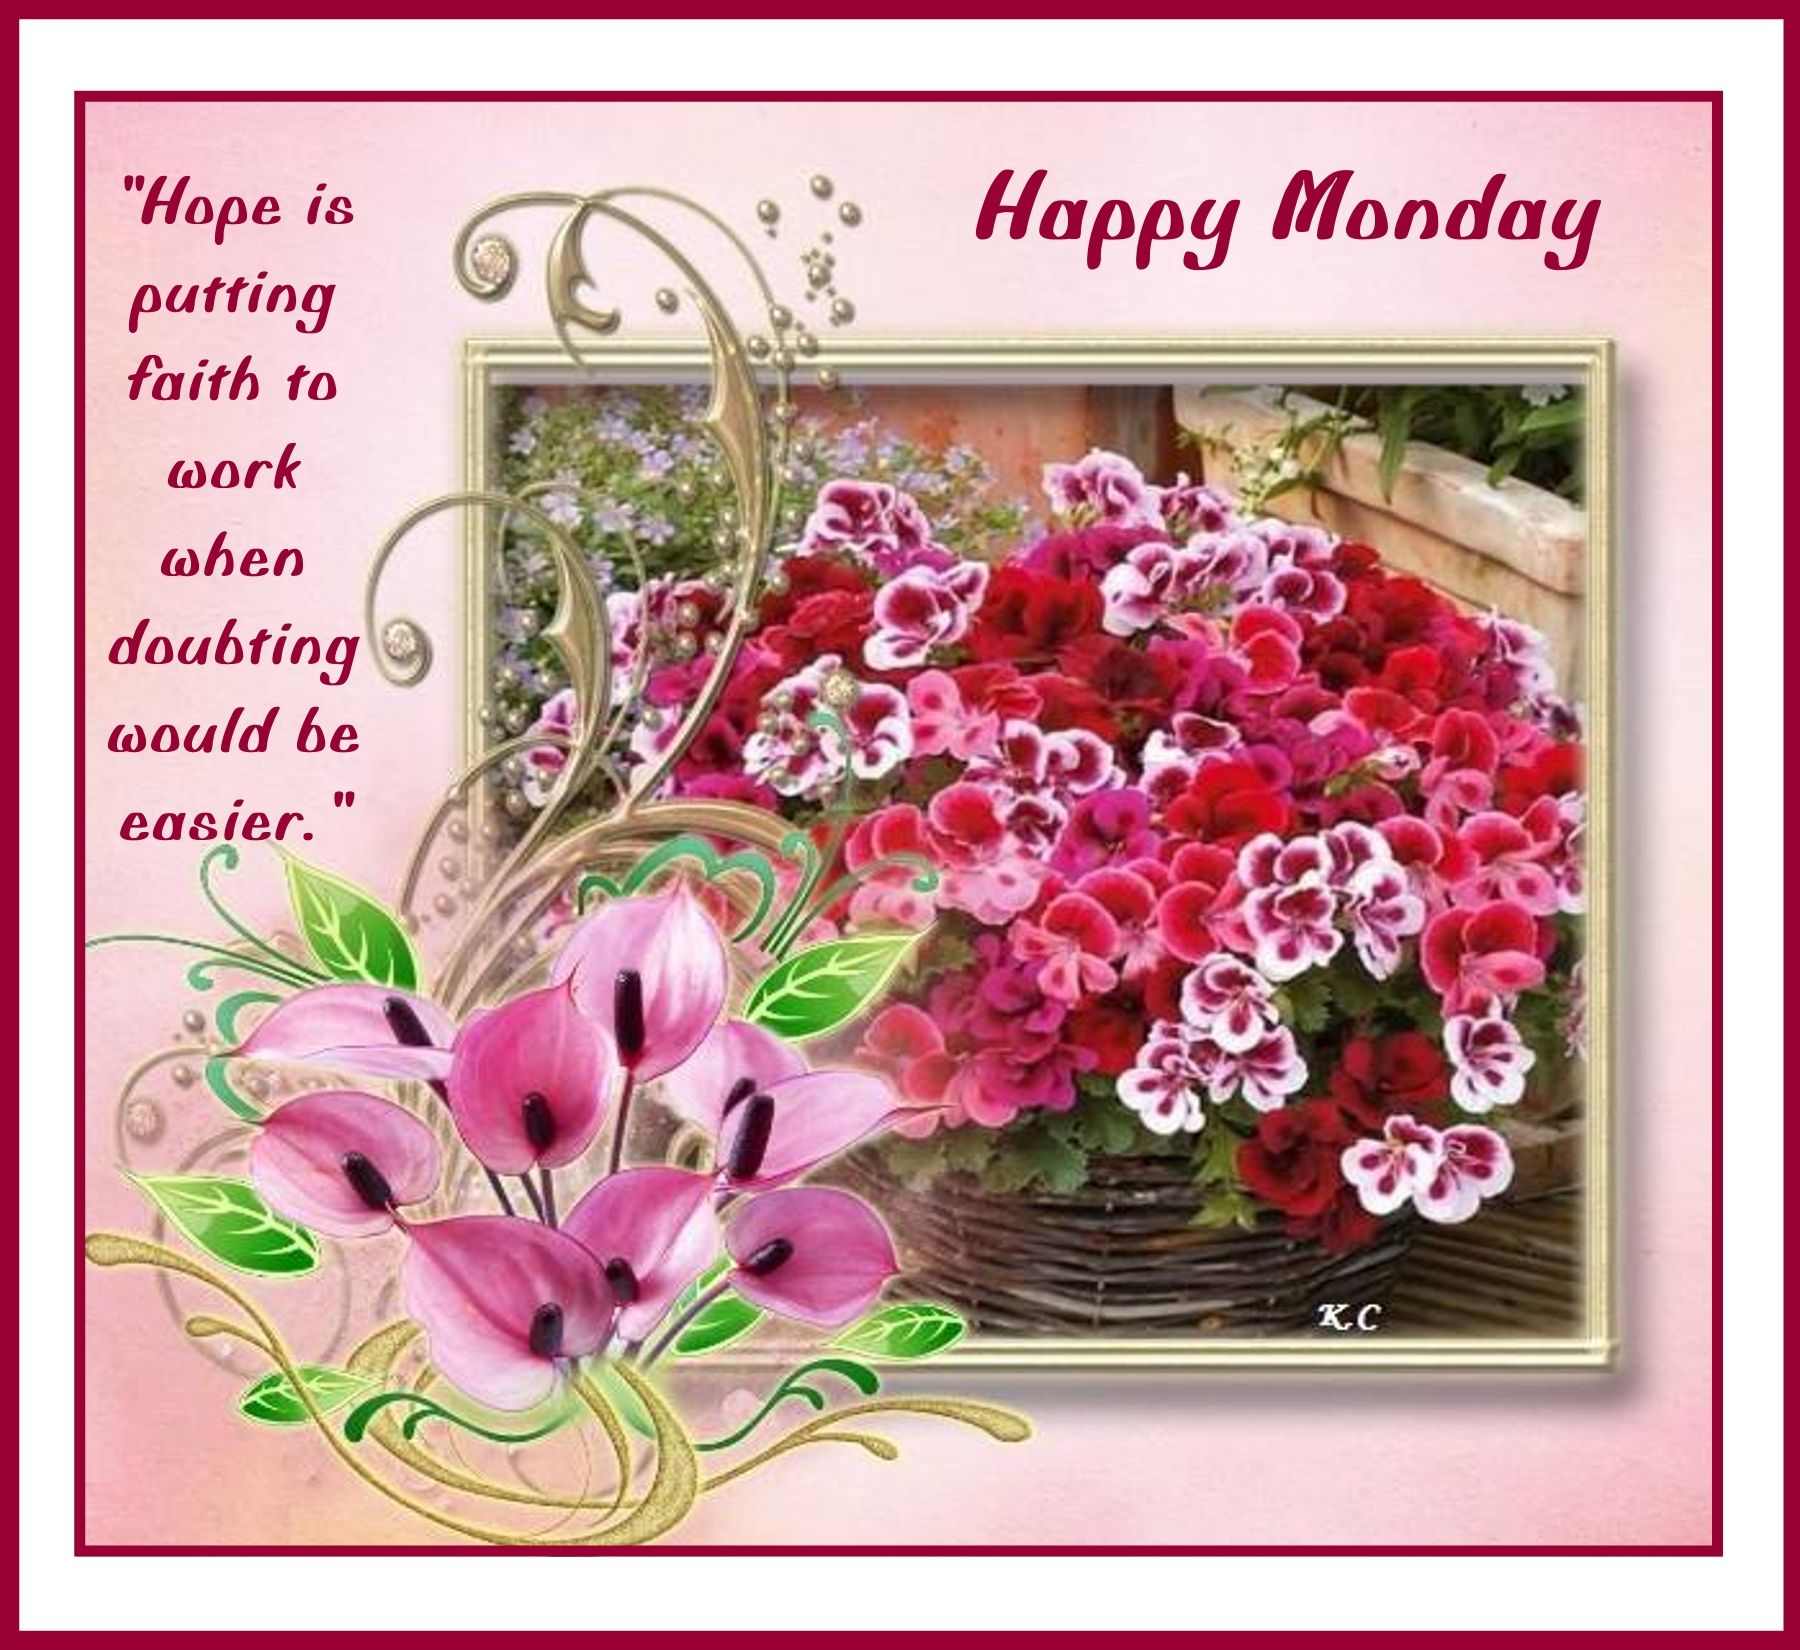 Pin By Rosa Well On Monday Blessings Pinterest Monday Greetings